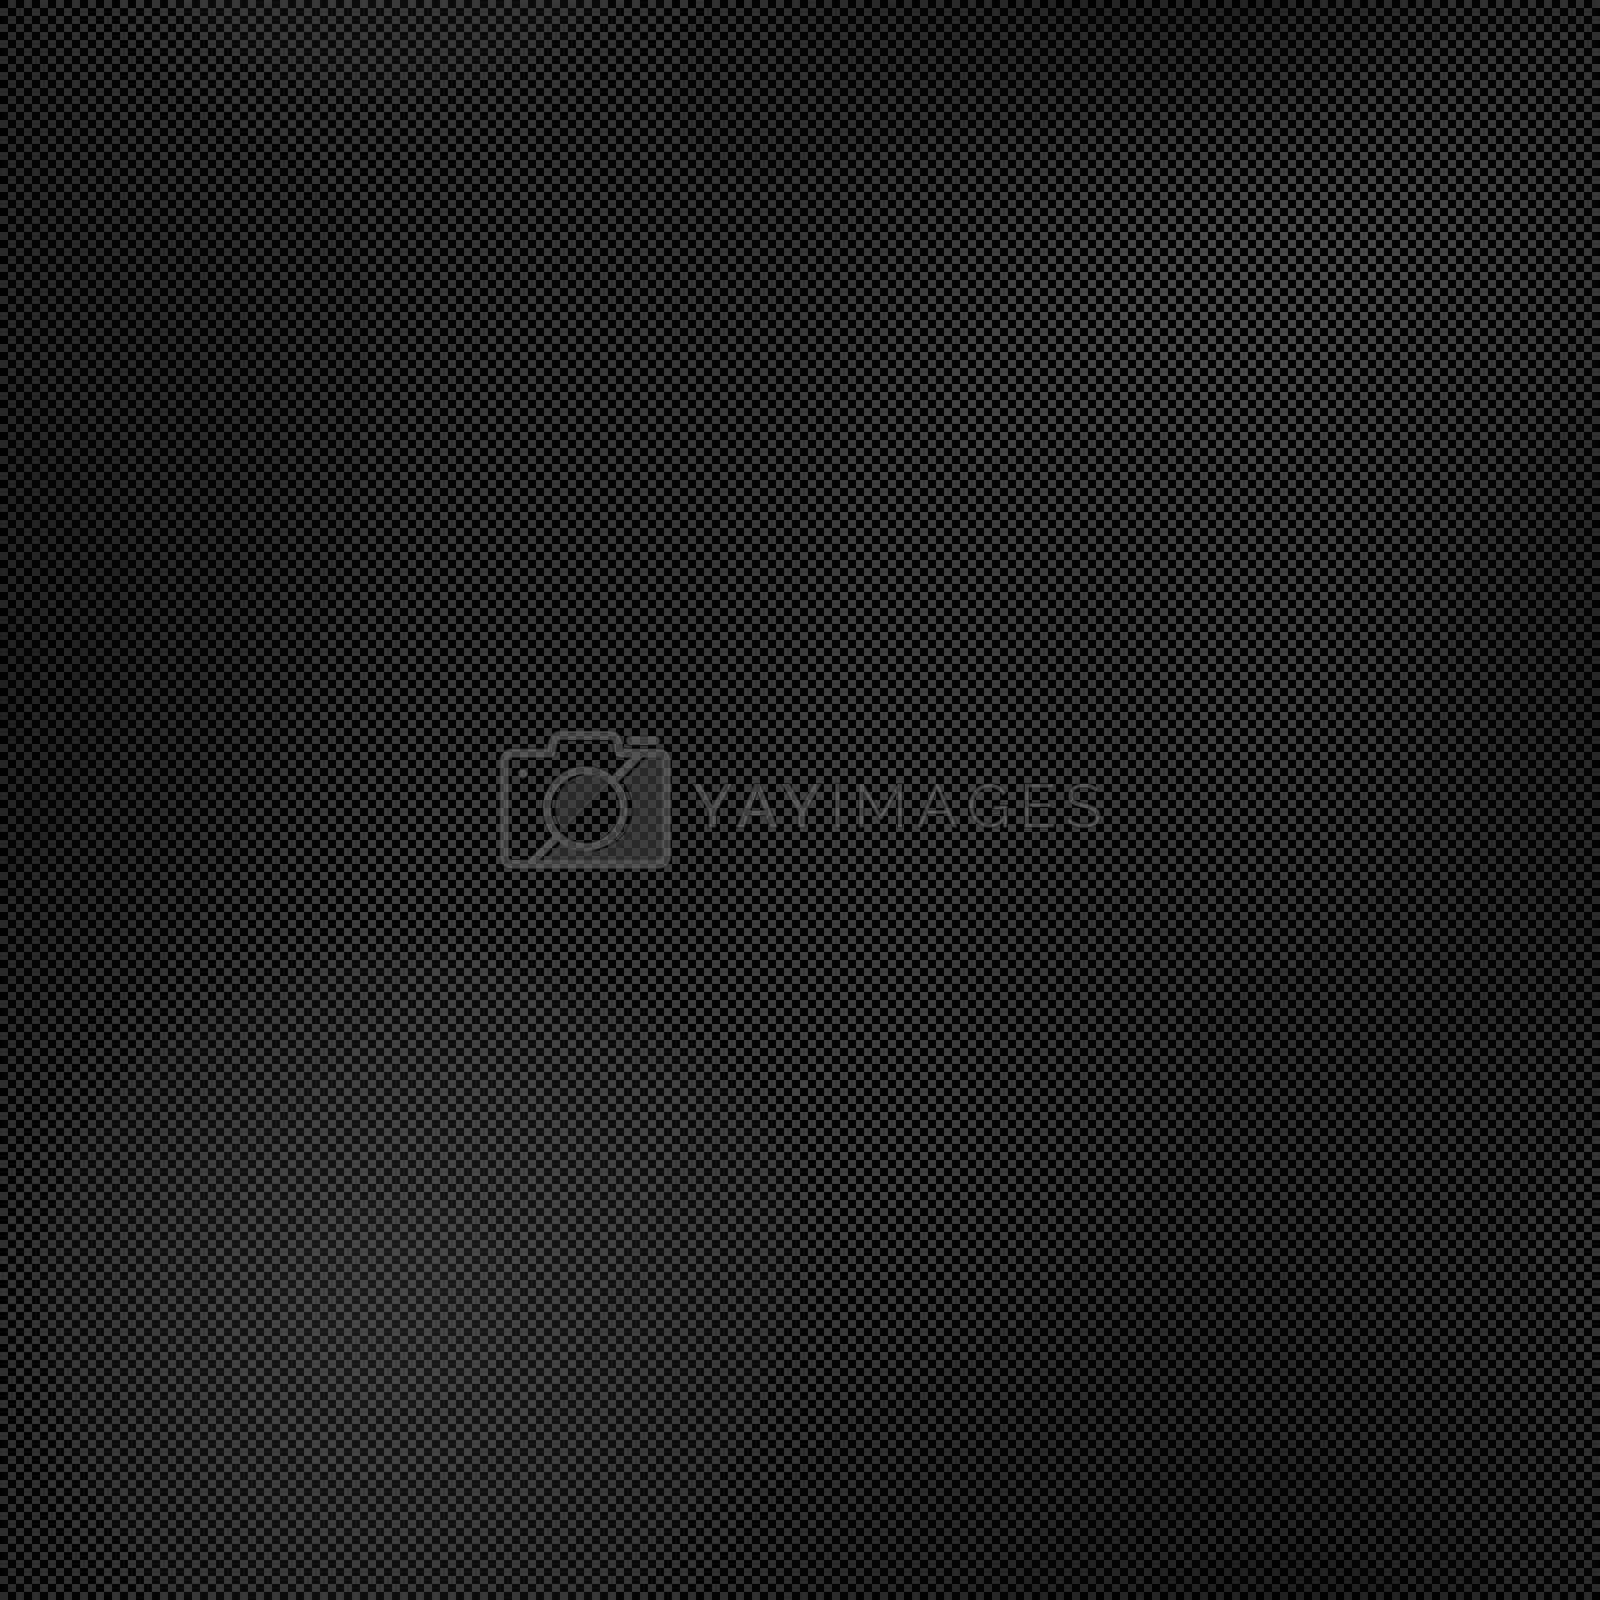 Highly detailed illustration of a carbon fiber background.